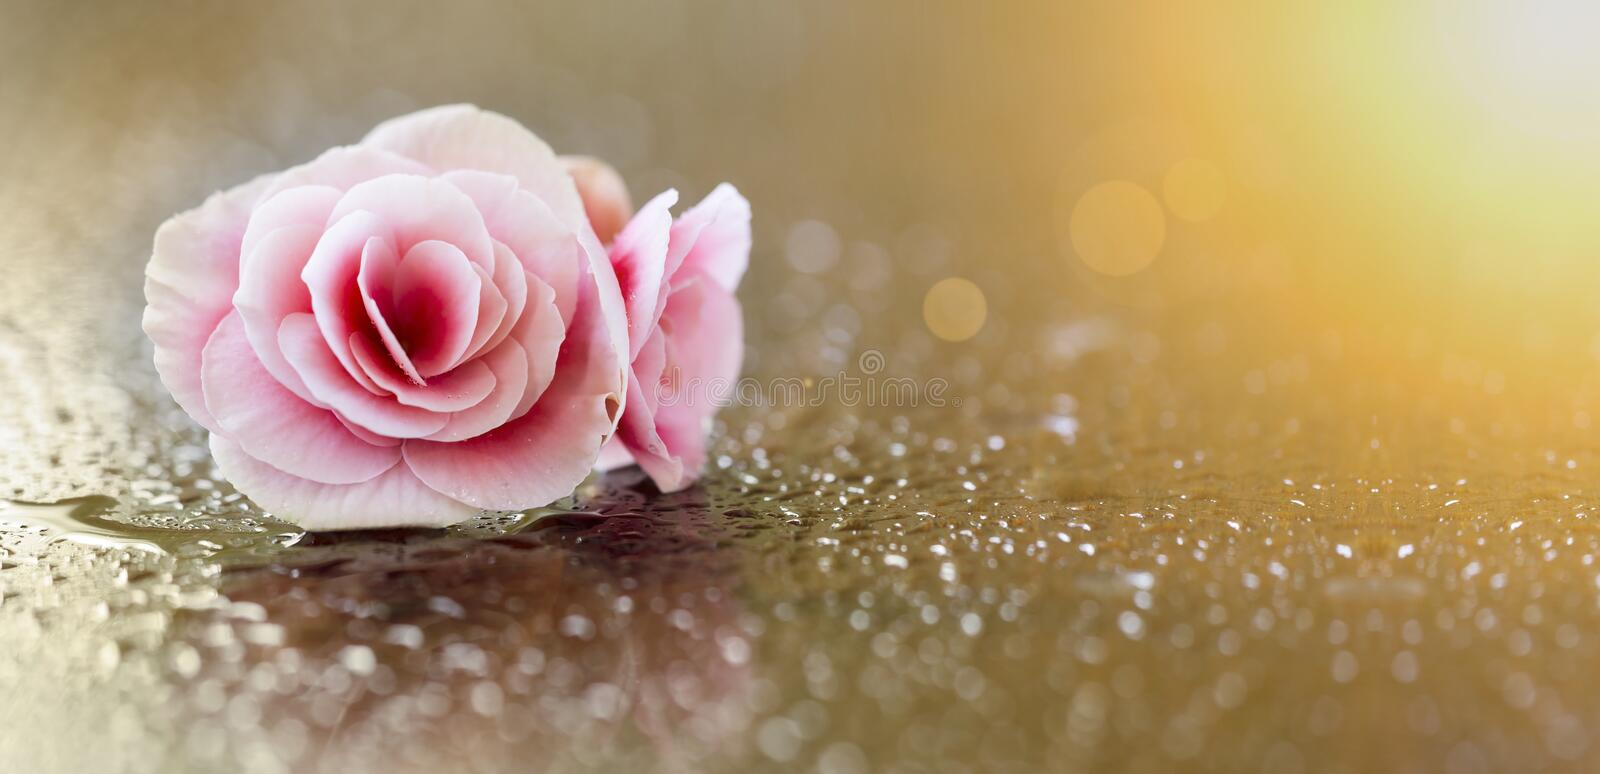 Soft pink flower banner. Website banner of a soft pink flower with water drops stock photos